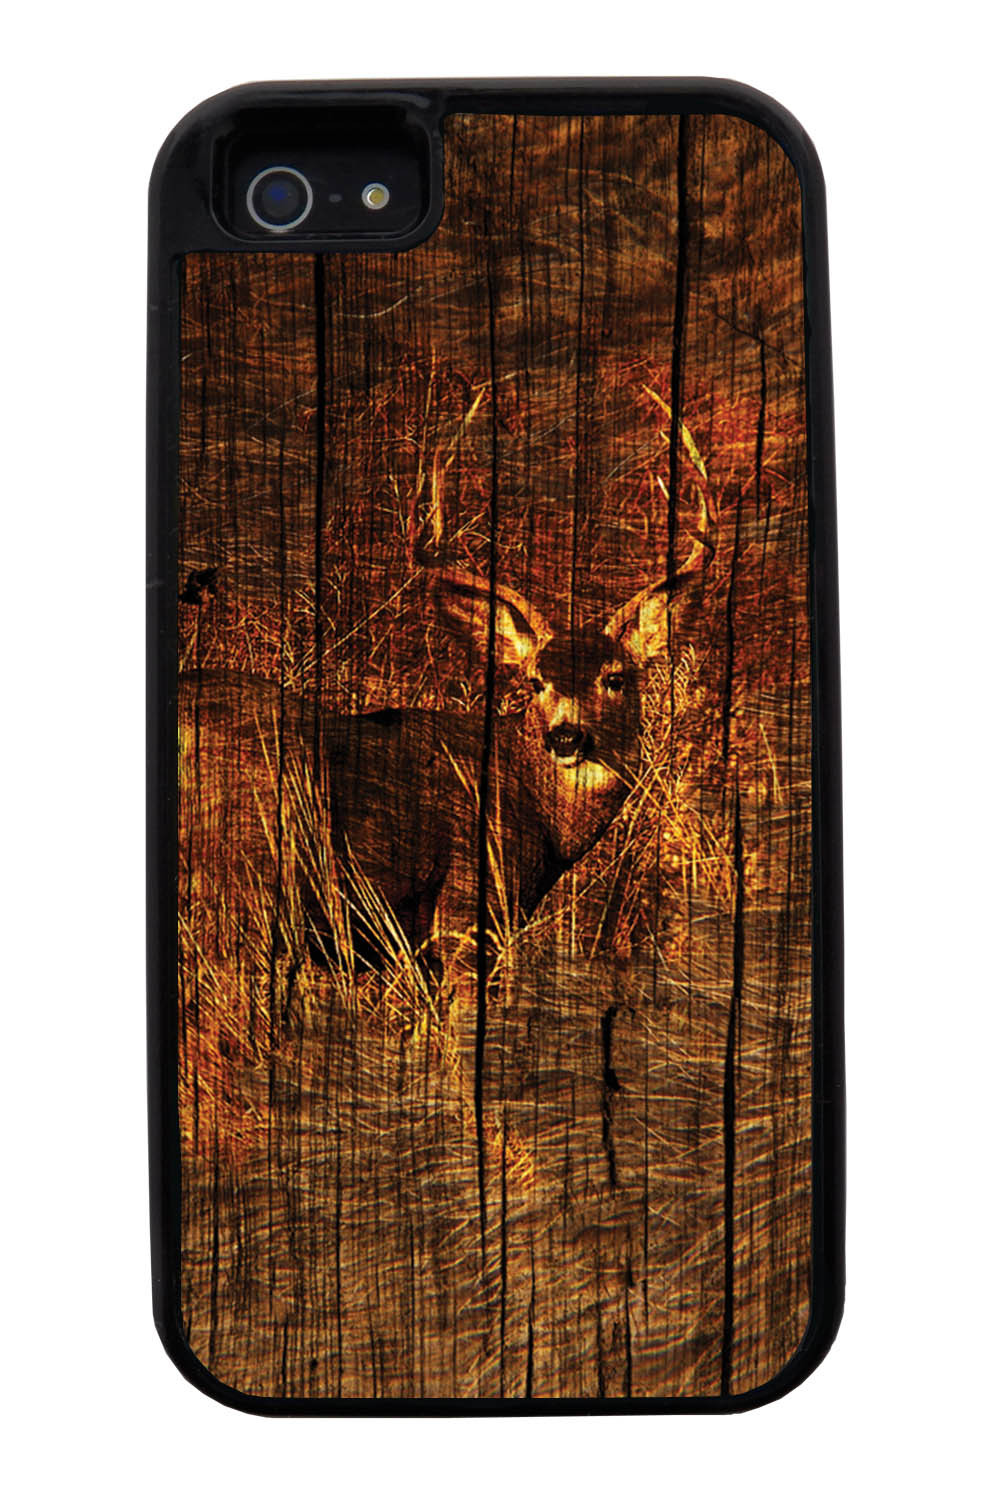 Apple iPhone 5 / 5S Deer Case - Deer Photo with Wood Overlay - Picture - Black Tough Hybrid Case